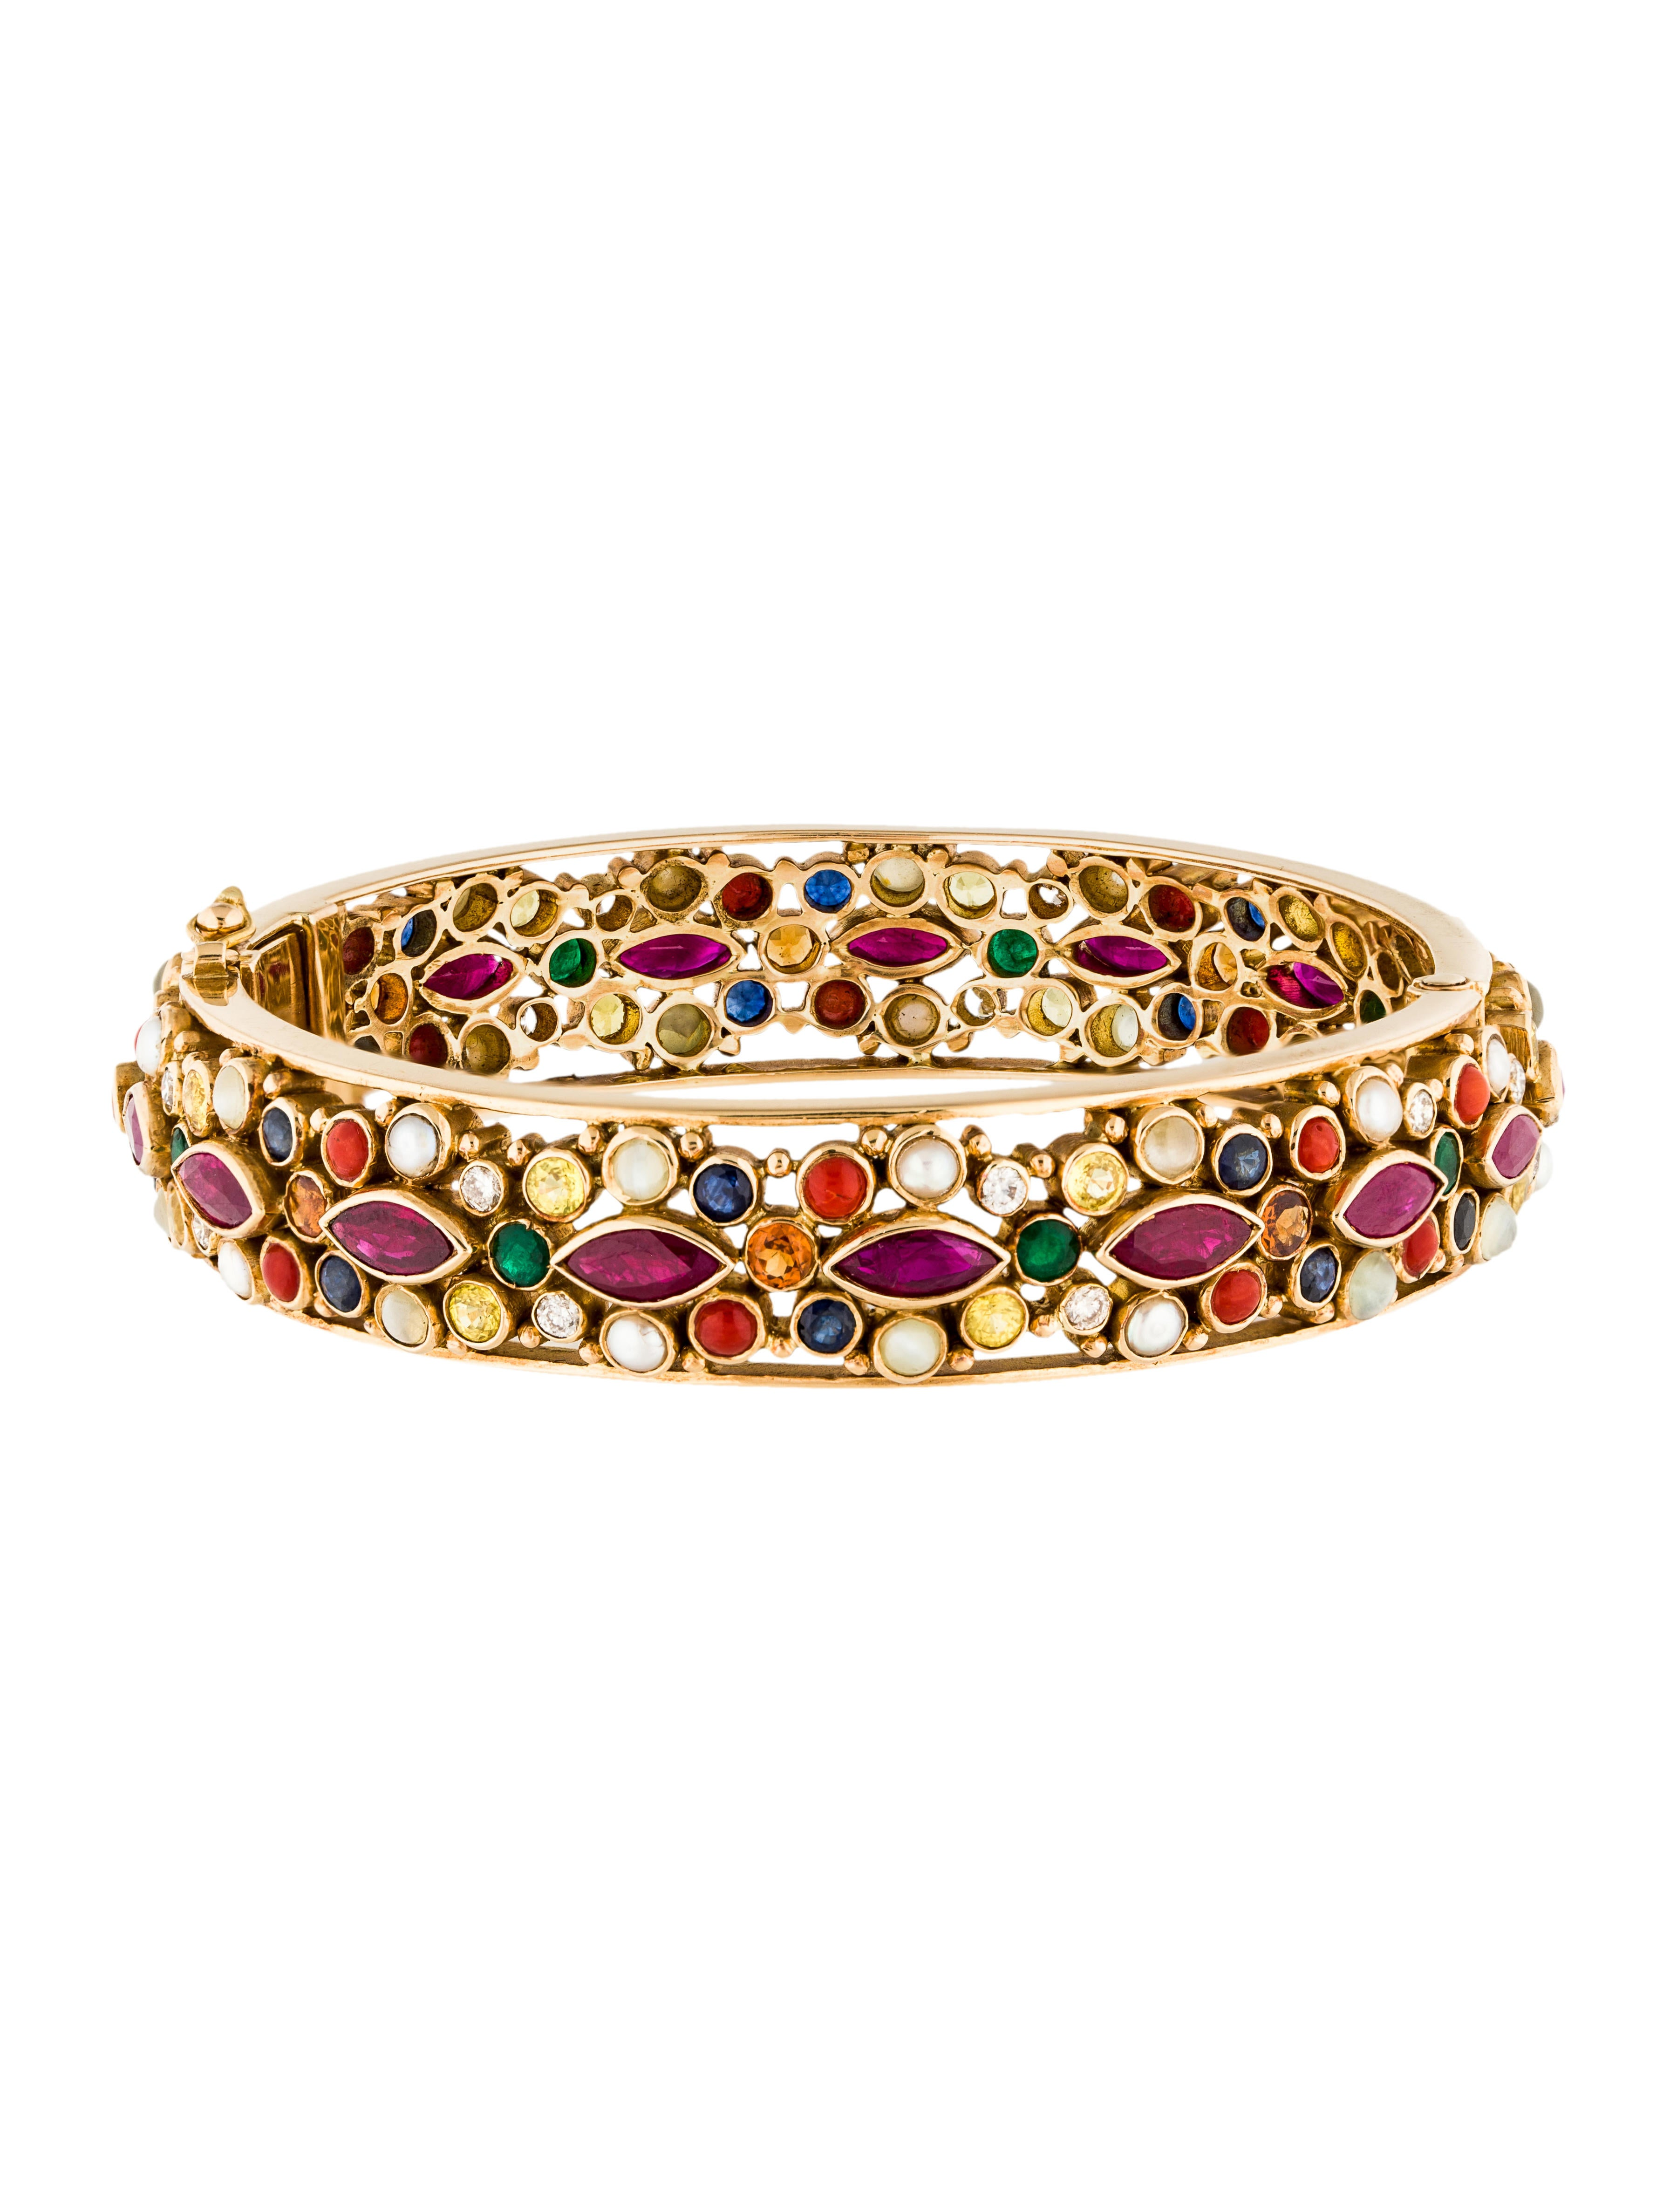 18k Pearl Ruby Diamond Multistone Bangle Bracelet